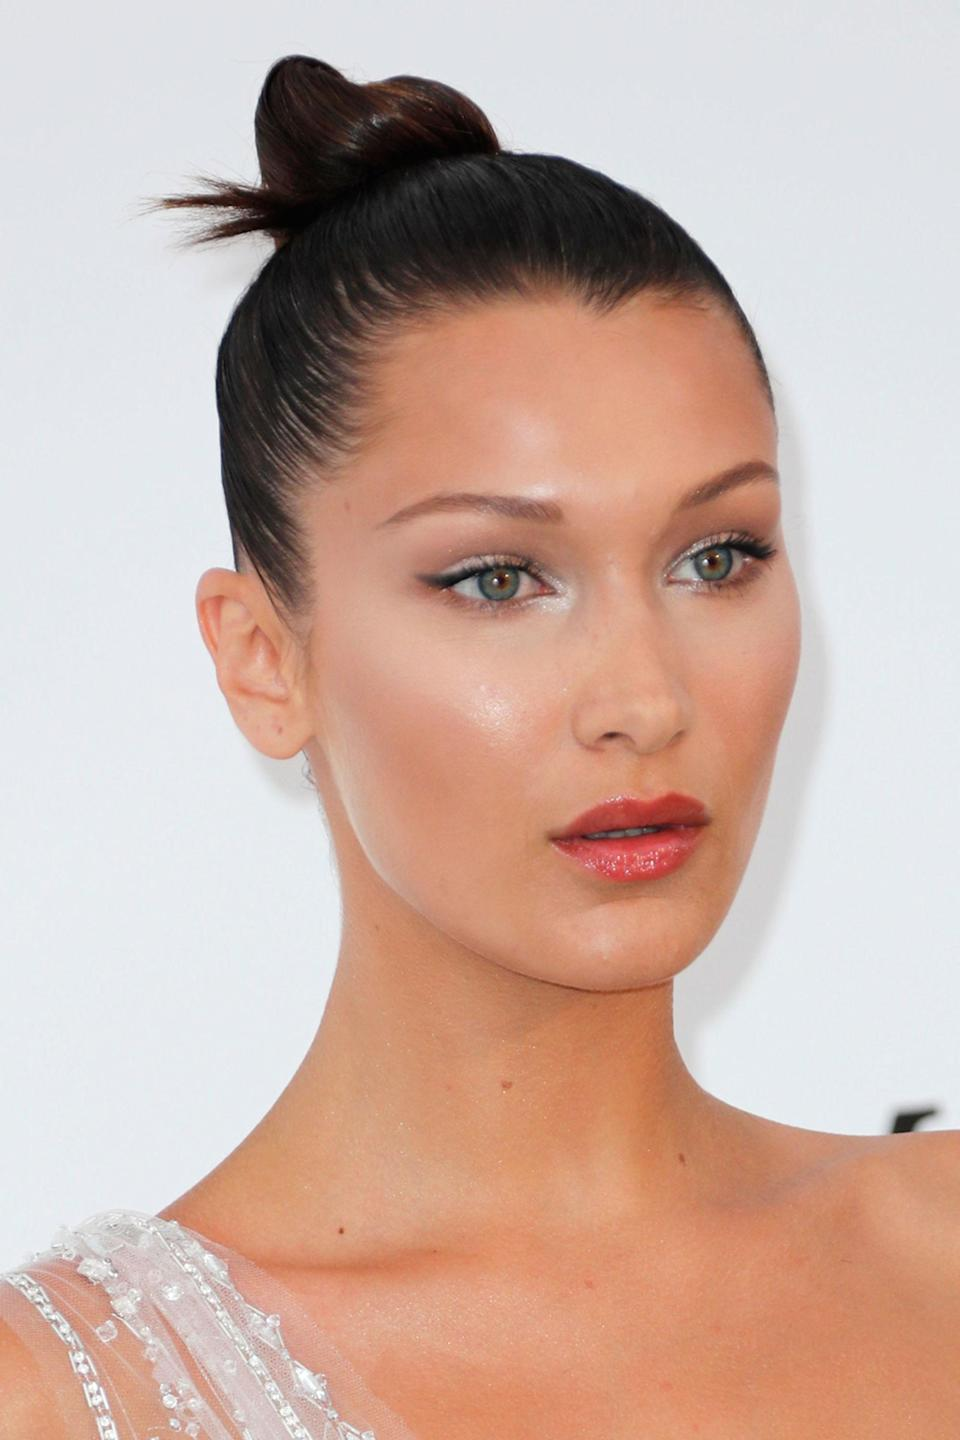 """<p>The supermodel wore her hair slicked back into a tight bun and created a dewy look with glistening highlighter on her cheekbones, chin and forehead - slightly <a rel=""""nofollow noopener"""" href=""""http://www.harpersbazaar.co.uk/beauty/make-up-nails/news/a40575/highlight-trick-kim-kardashian-make-up-artist-mario-dedivanovic"""" target=""""_blank"""" data-ylk=""""slk:off-centre"""" class=""""link rapid-noclick-resp"""">off-centre</a> for a more natural look. </p>"""